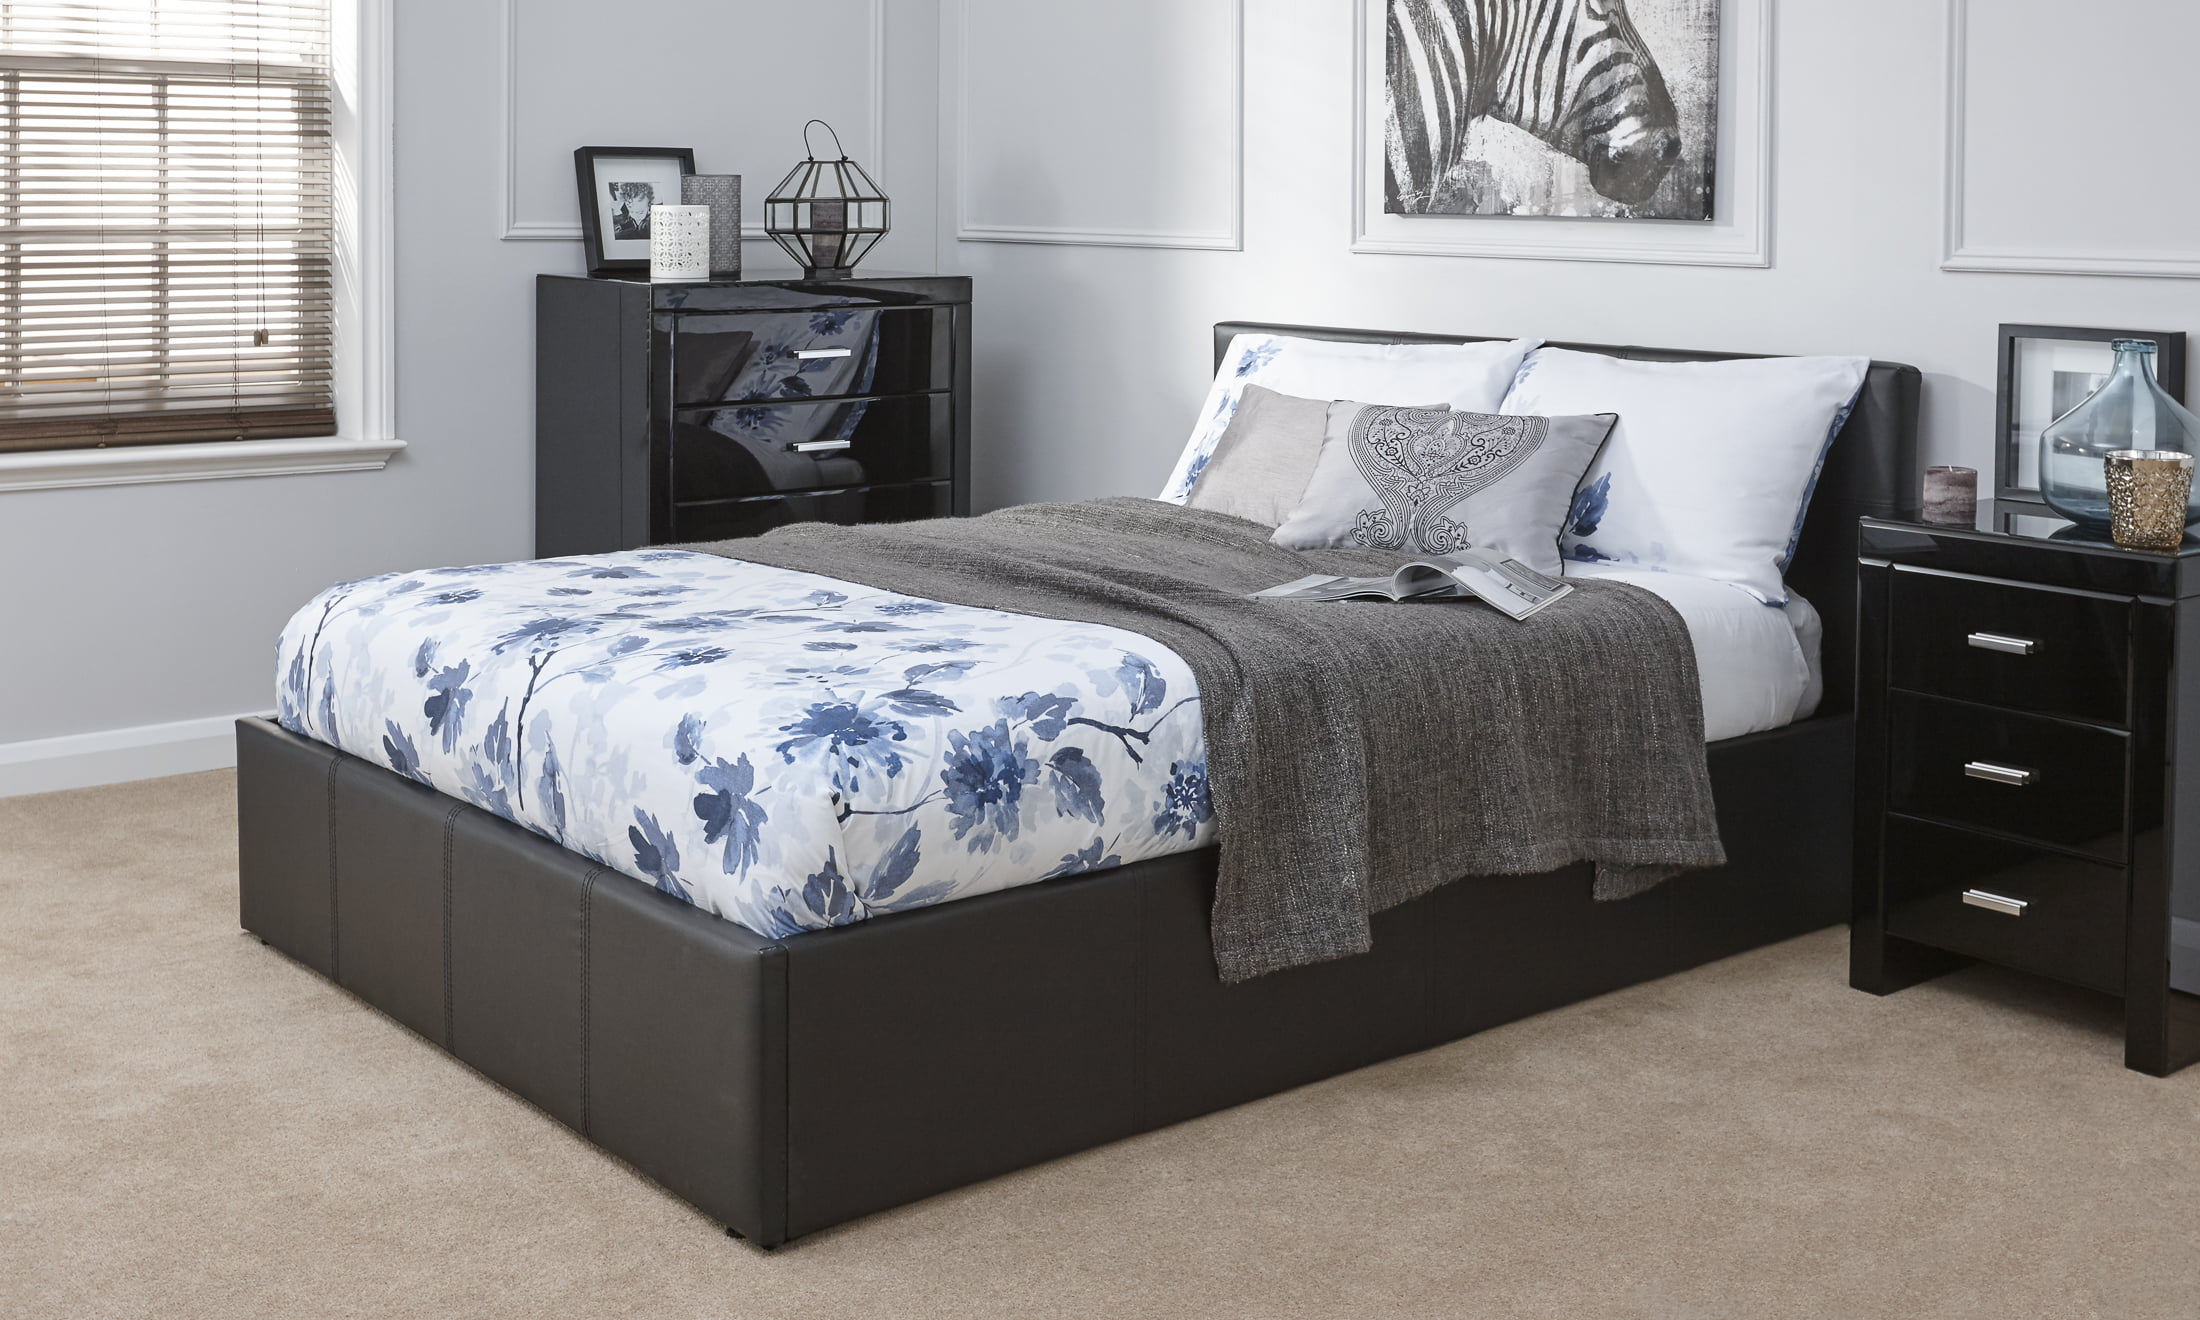 Double Arizona Black Ottoman Bed Frame - Dublin Beds